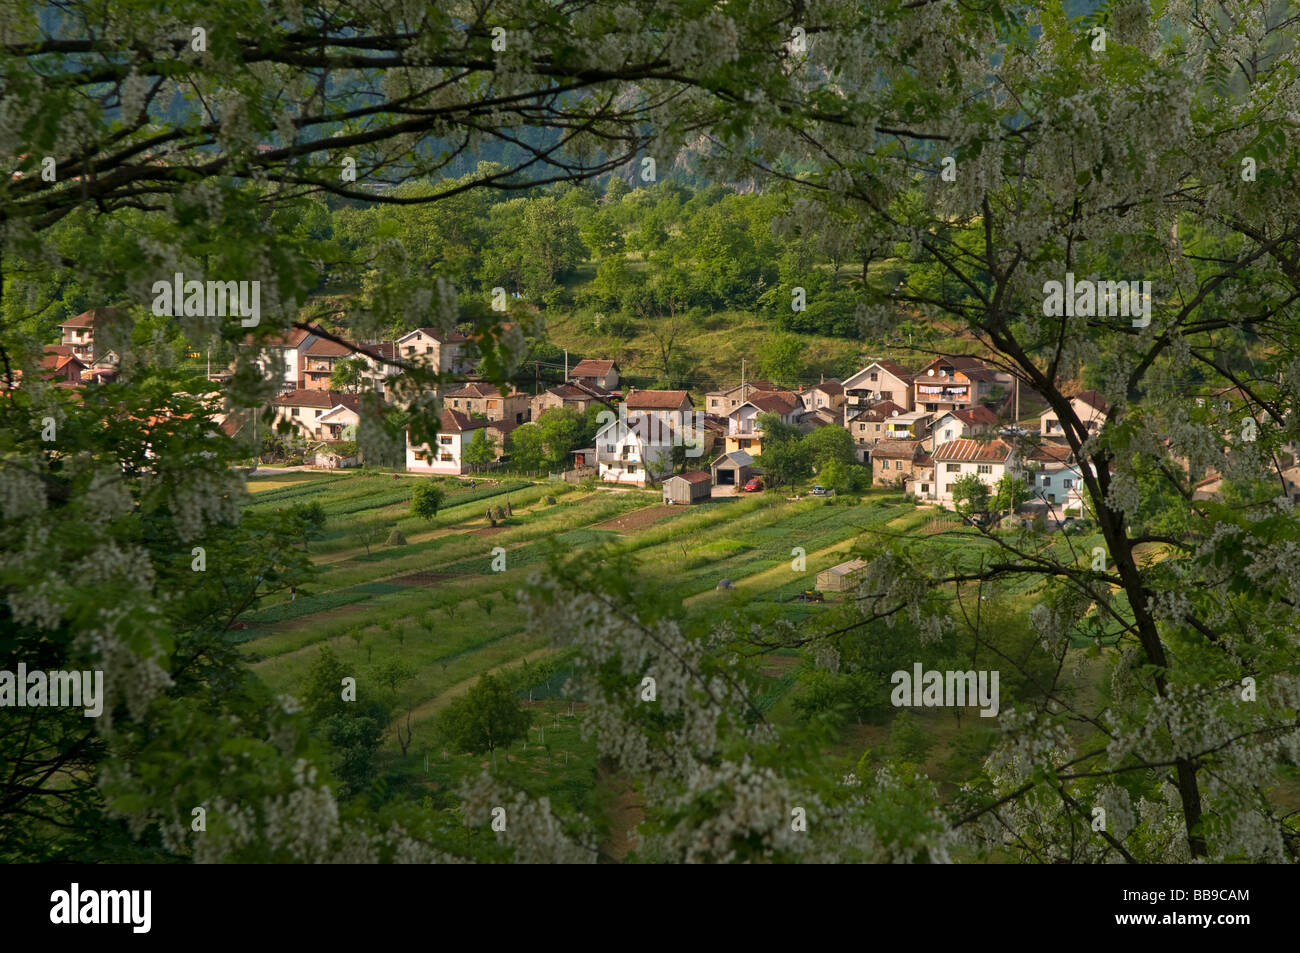 Scenic view of a village in northern Bosnia Herzegovina - Stock Image